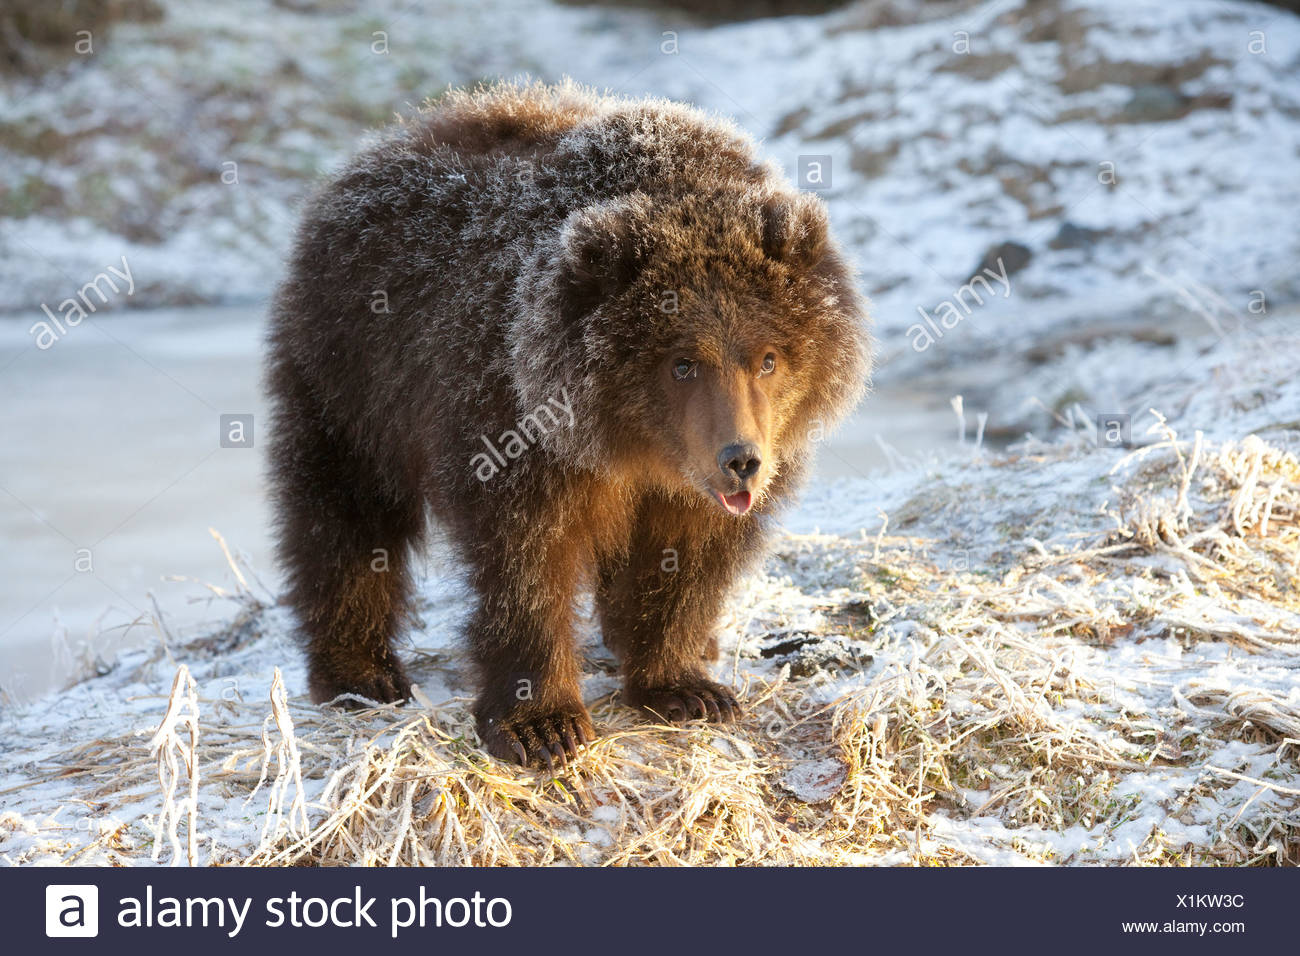 CAPTIVE: Kodiak Brown bear cub with frost covered fur standing on snowcovered ground,Alaska Wildlife Conservation Center, Alaska - Stock Image